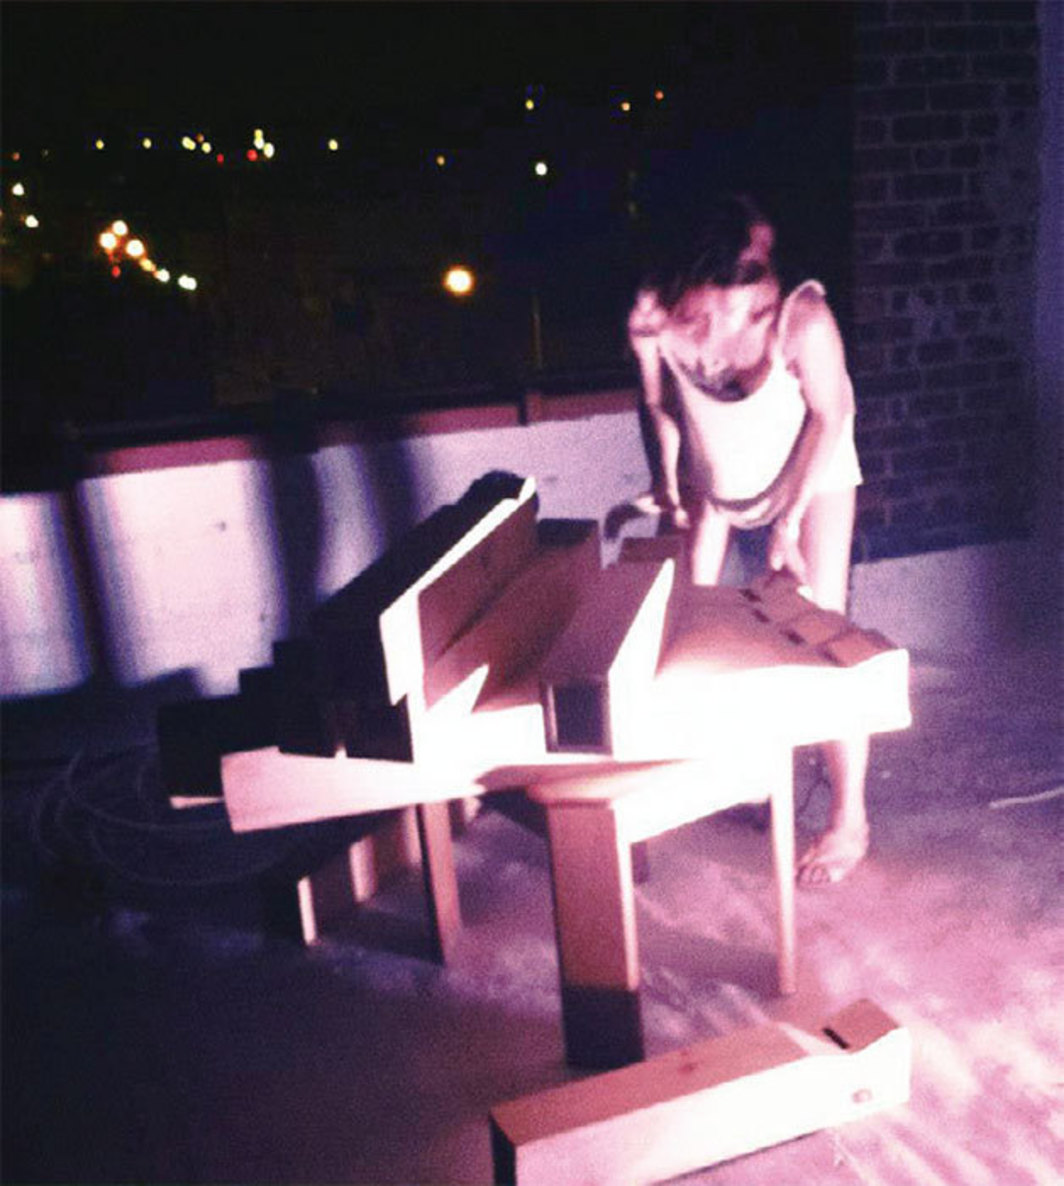 *Cammisa Buerhaus setting up her _Chroma Color Organ_, 2010, Brooklyn, NY, August 2012.* Photo: Cristina Razzano.